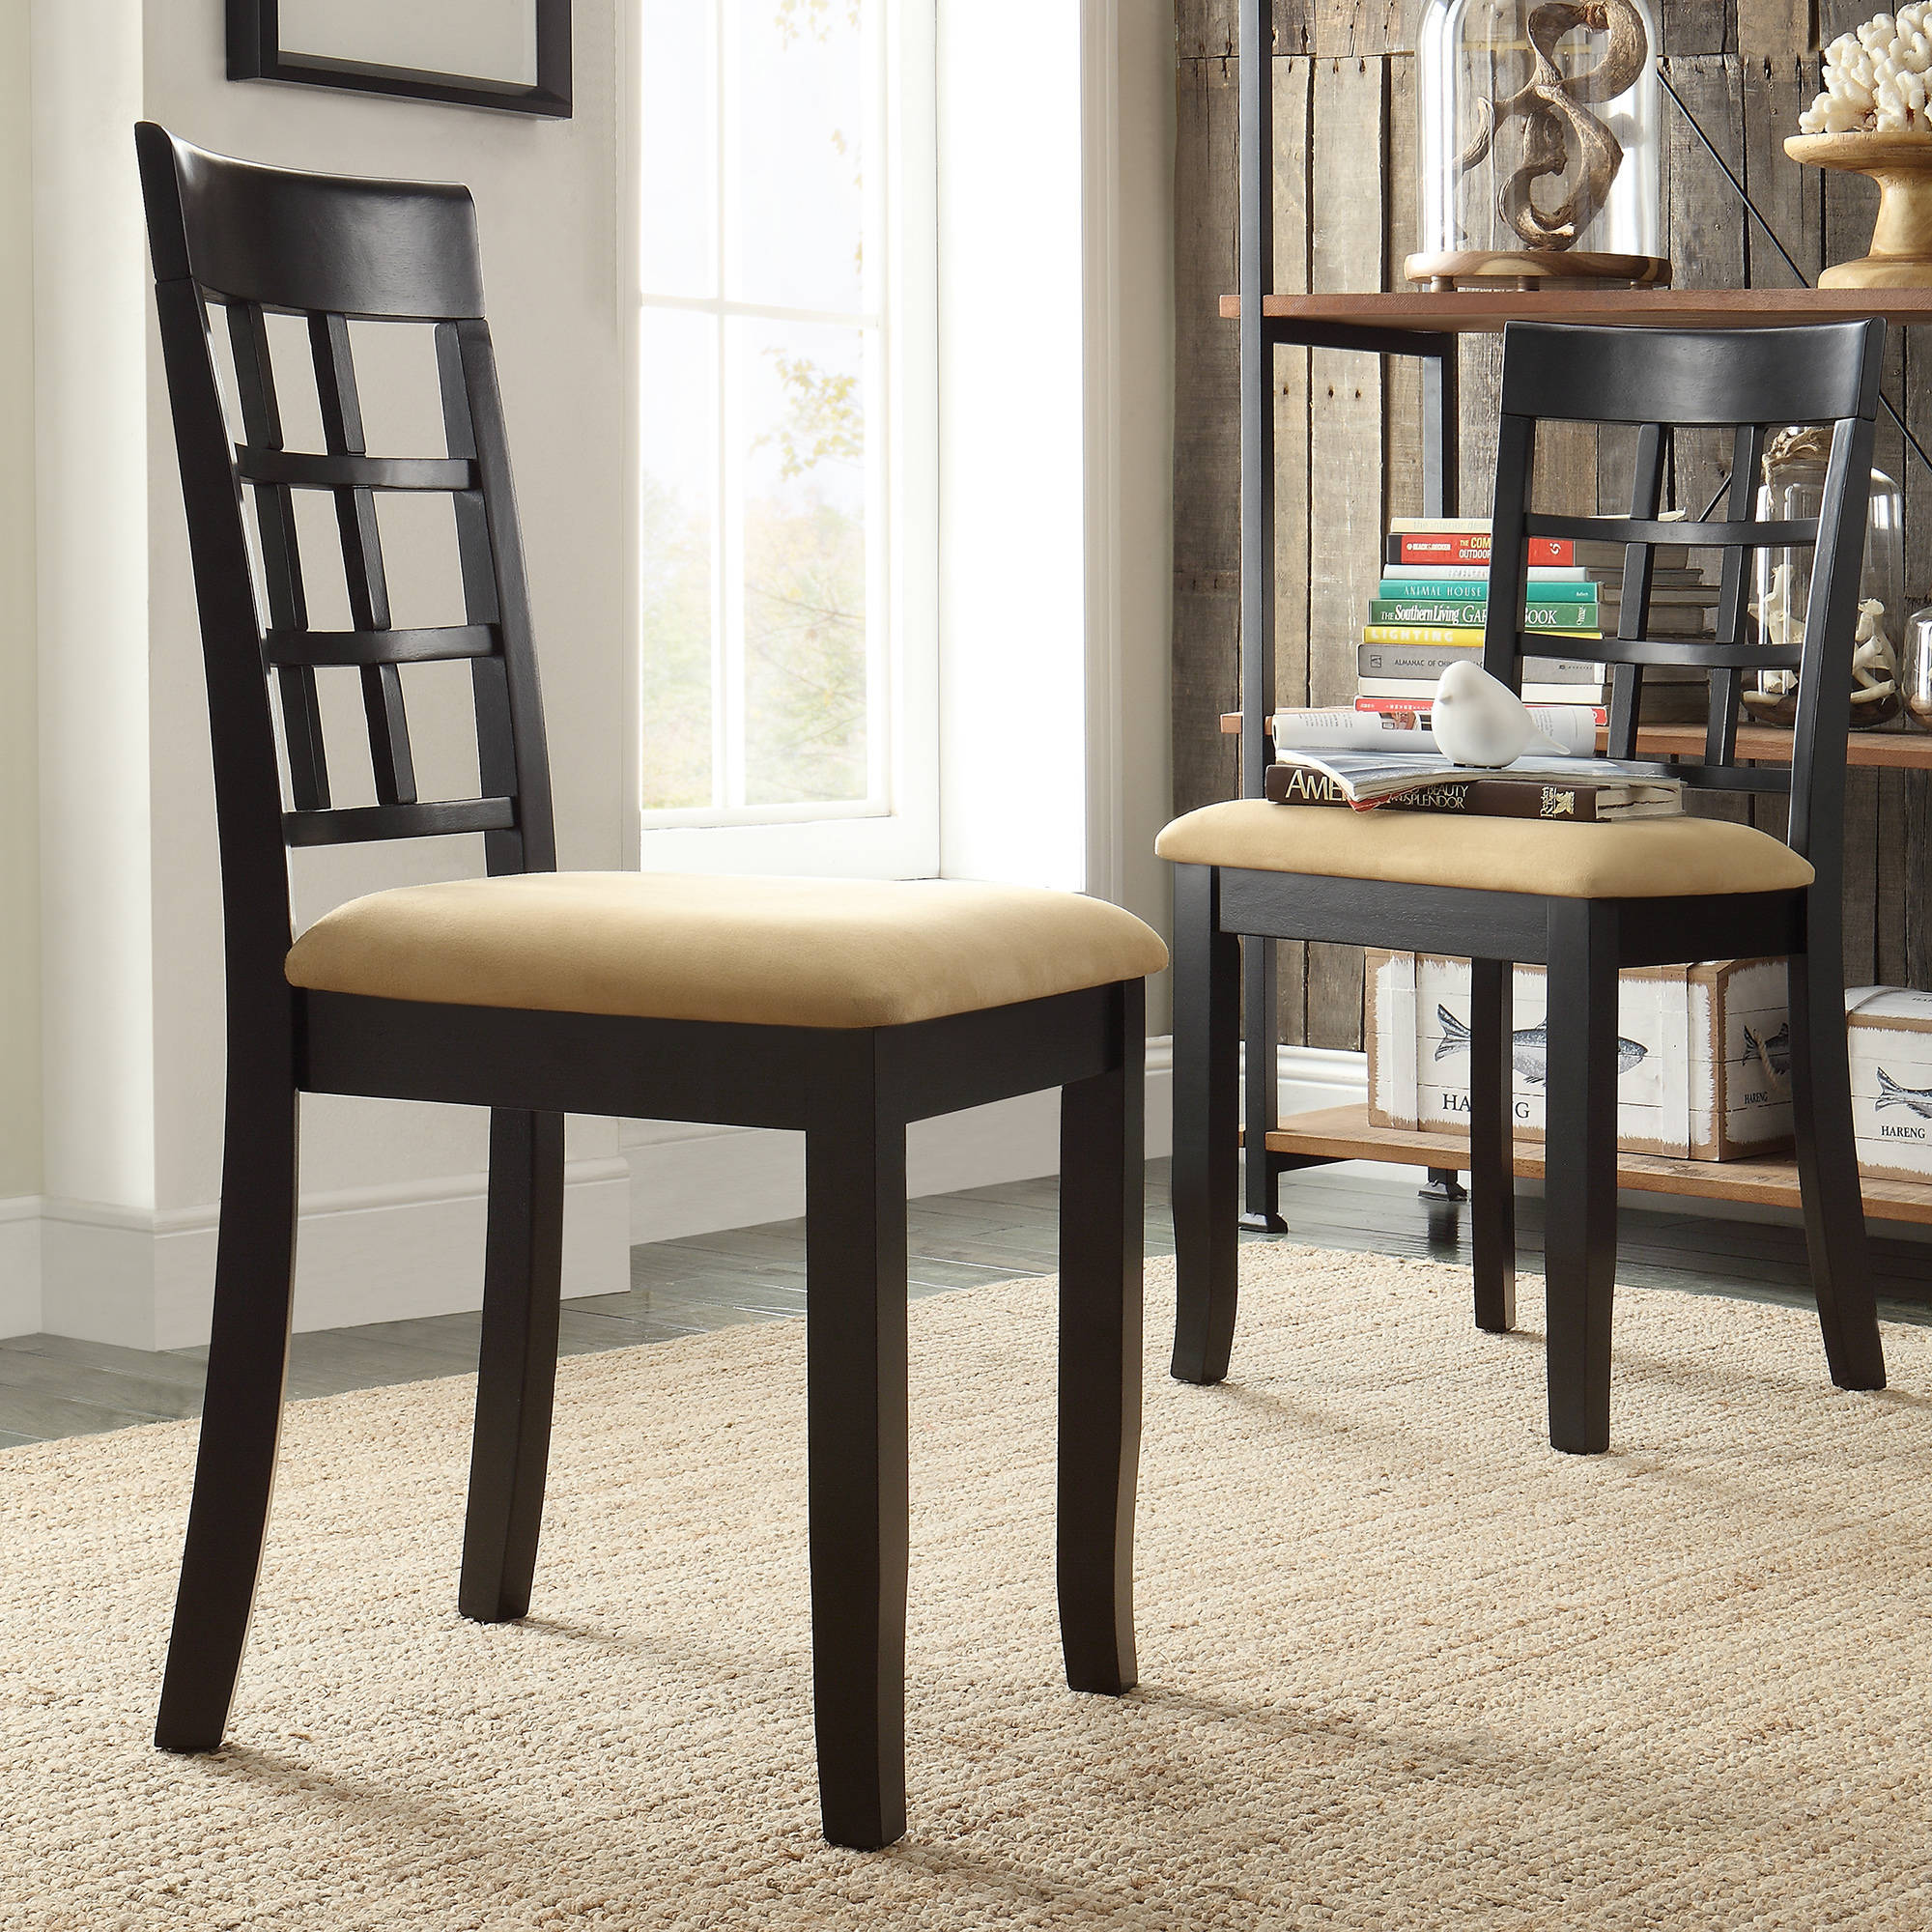 Walmart Dining Chairs ~ Lexington piece dining table set with window back chairs